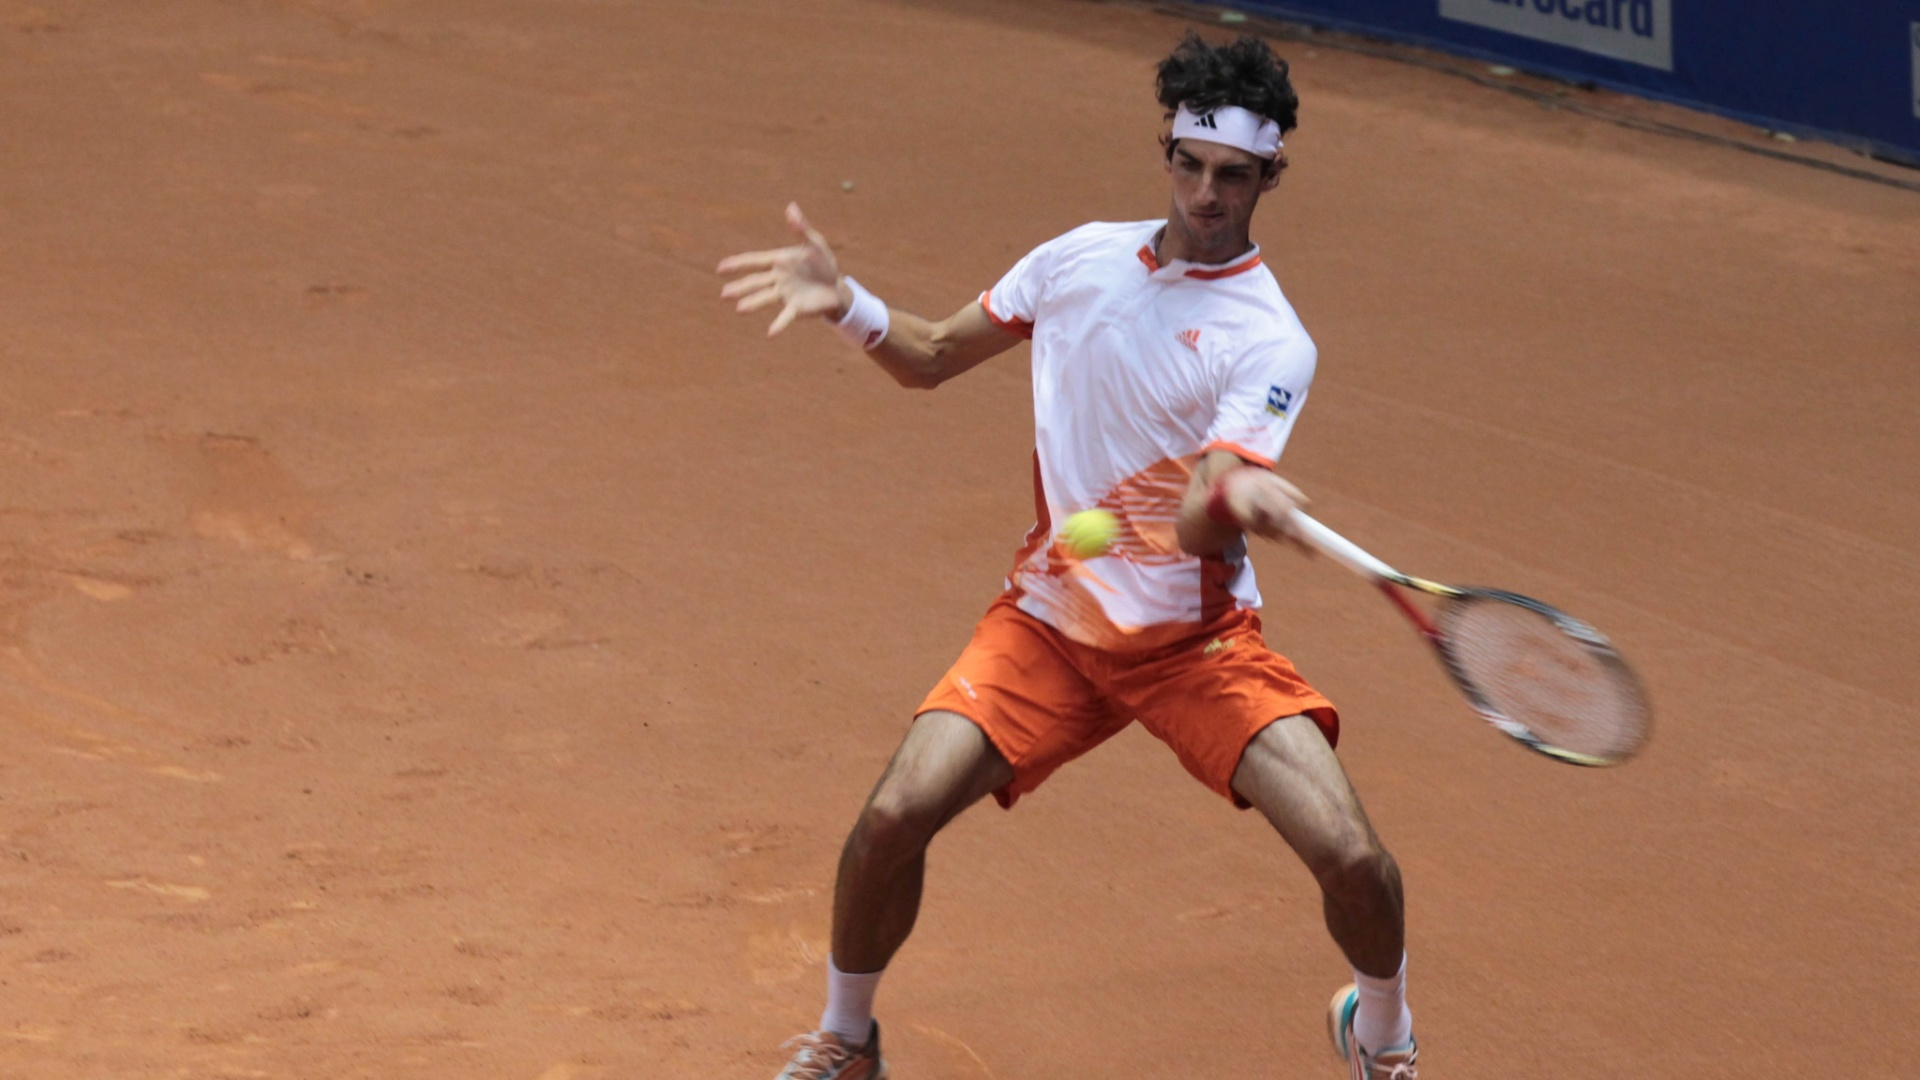 O brasileiro Thomaz Bellucci encara o italiano Filippo Volandri durante as semifinais do Aberto do Brasil